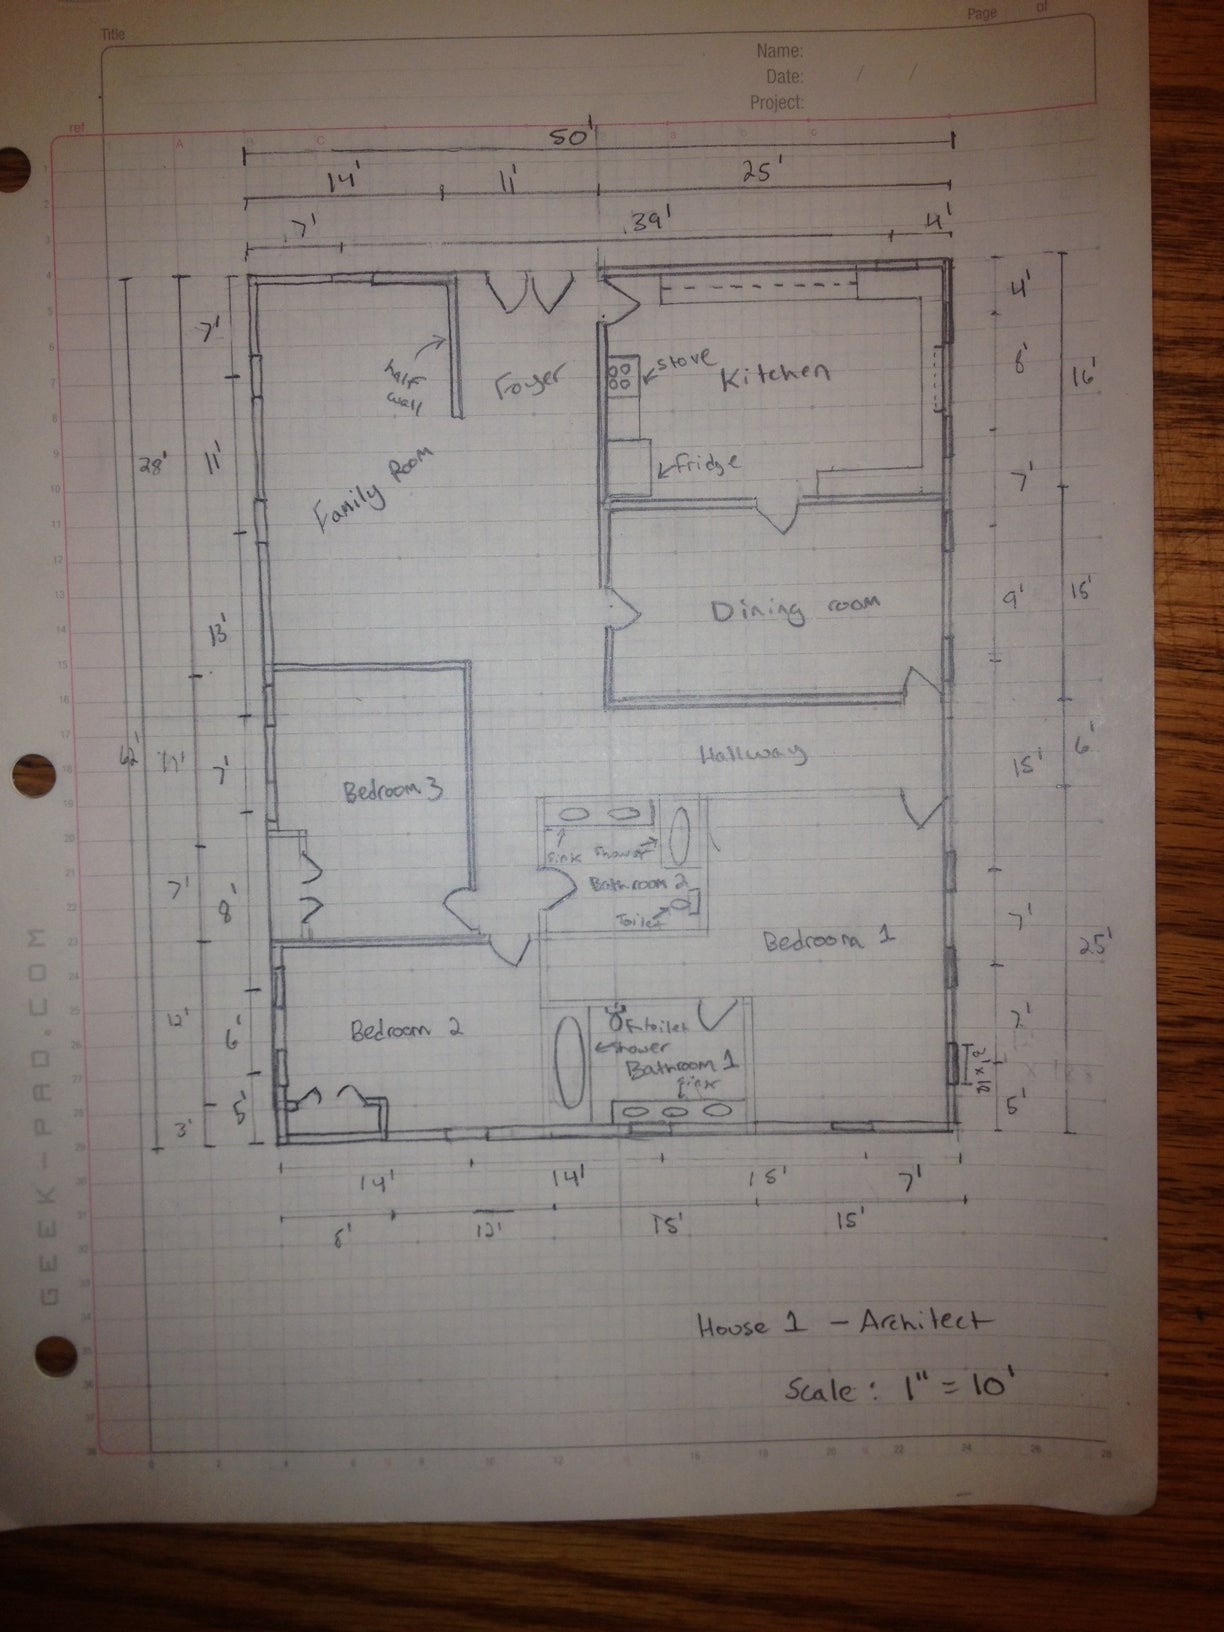 How to Manually Draft a Basic Floor Plan : 11 Steps - Instructables